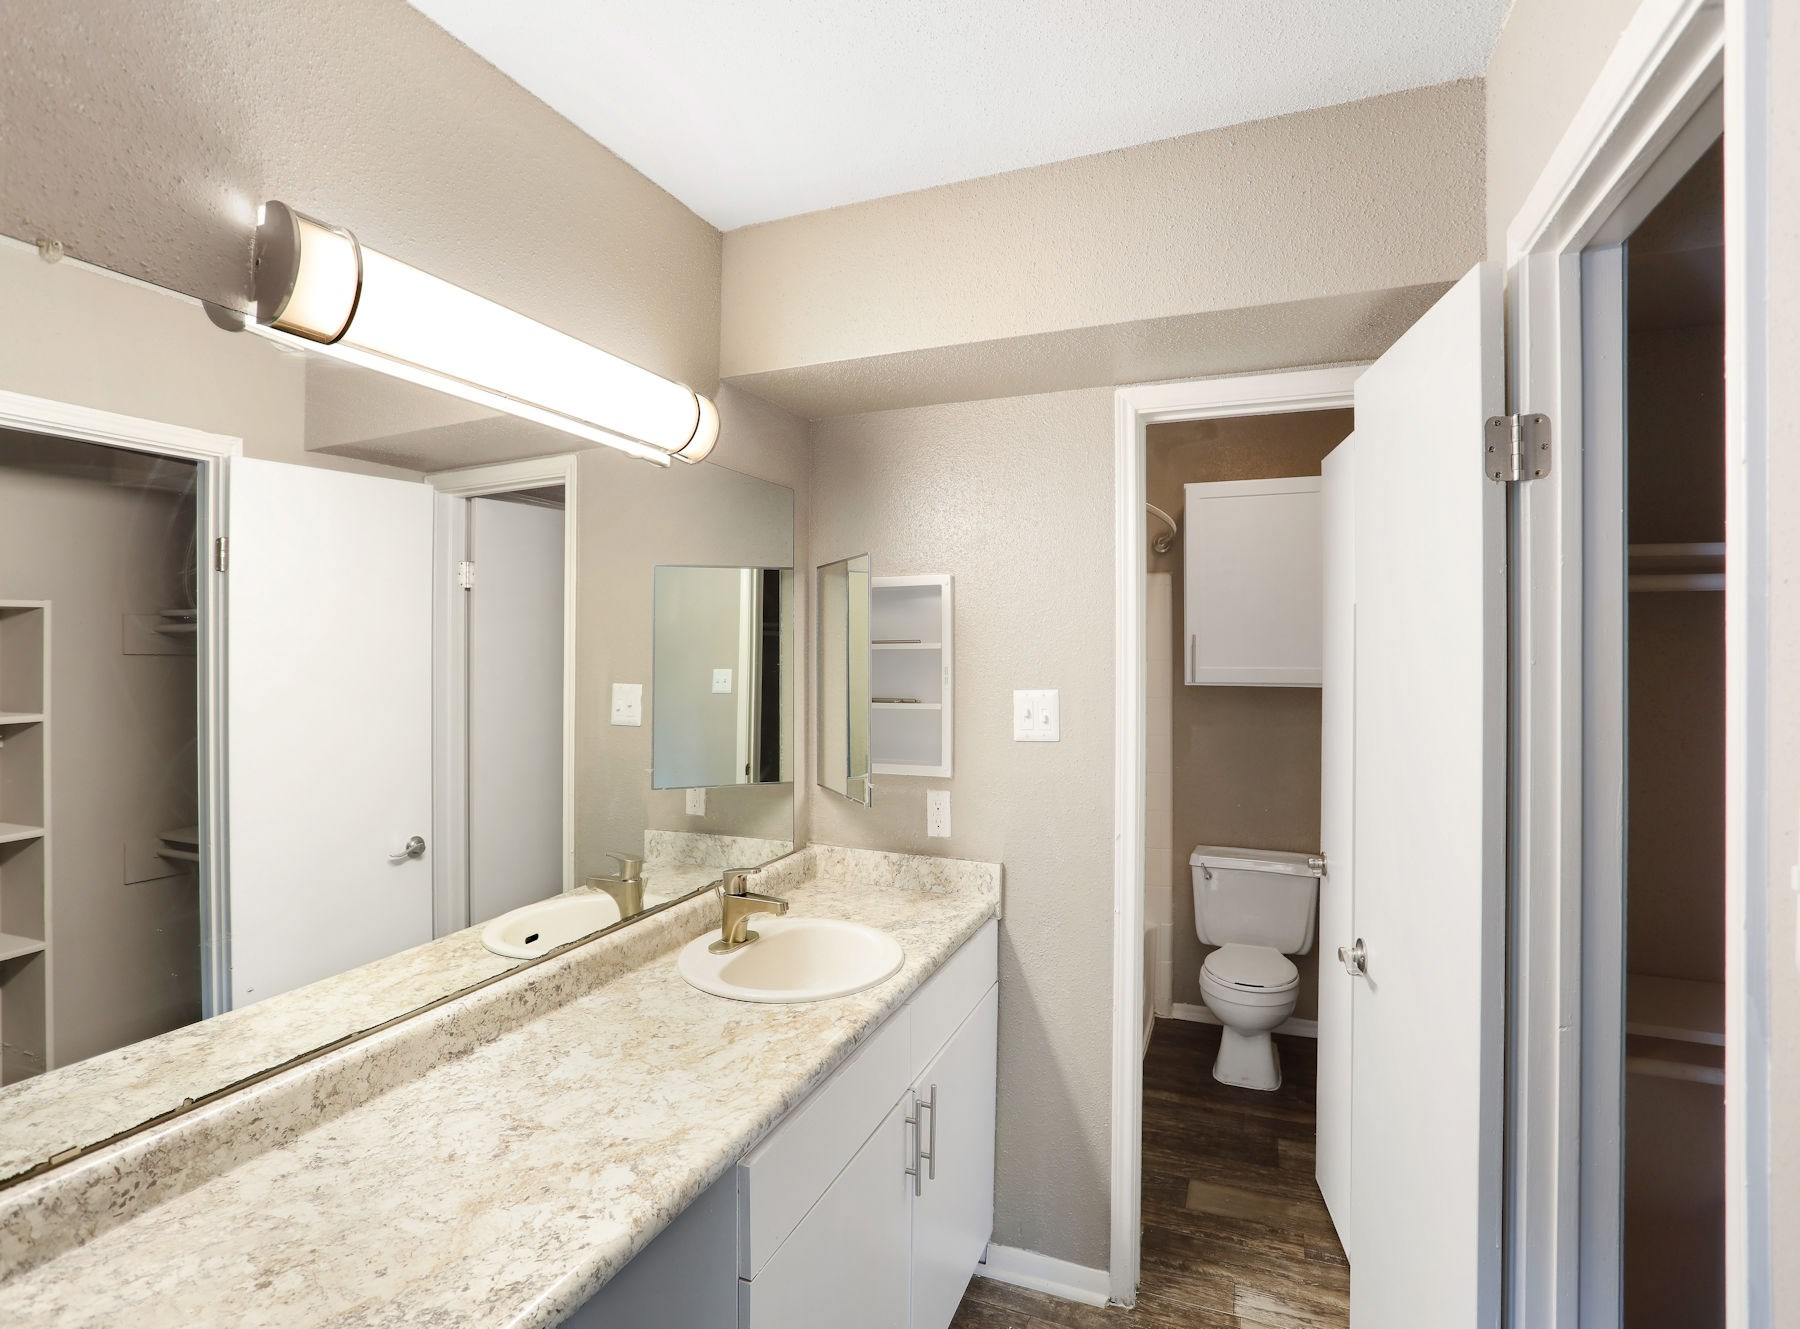 Model Bathroom with Large Mirror